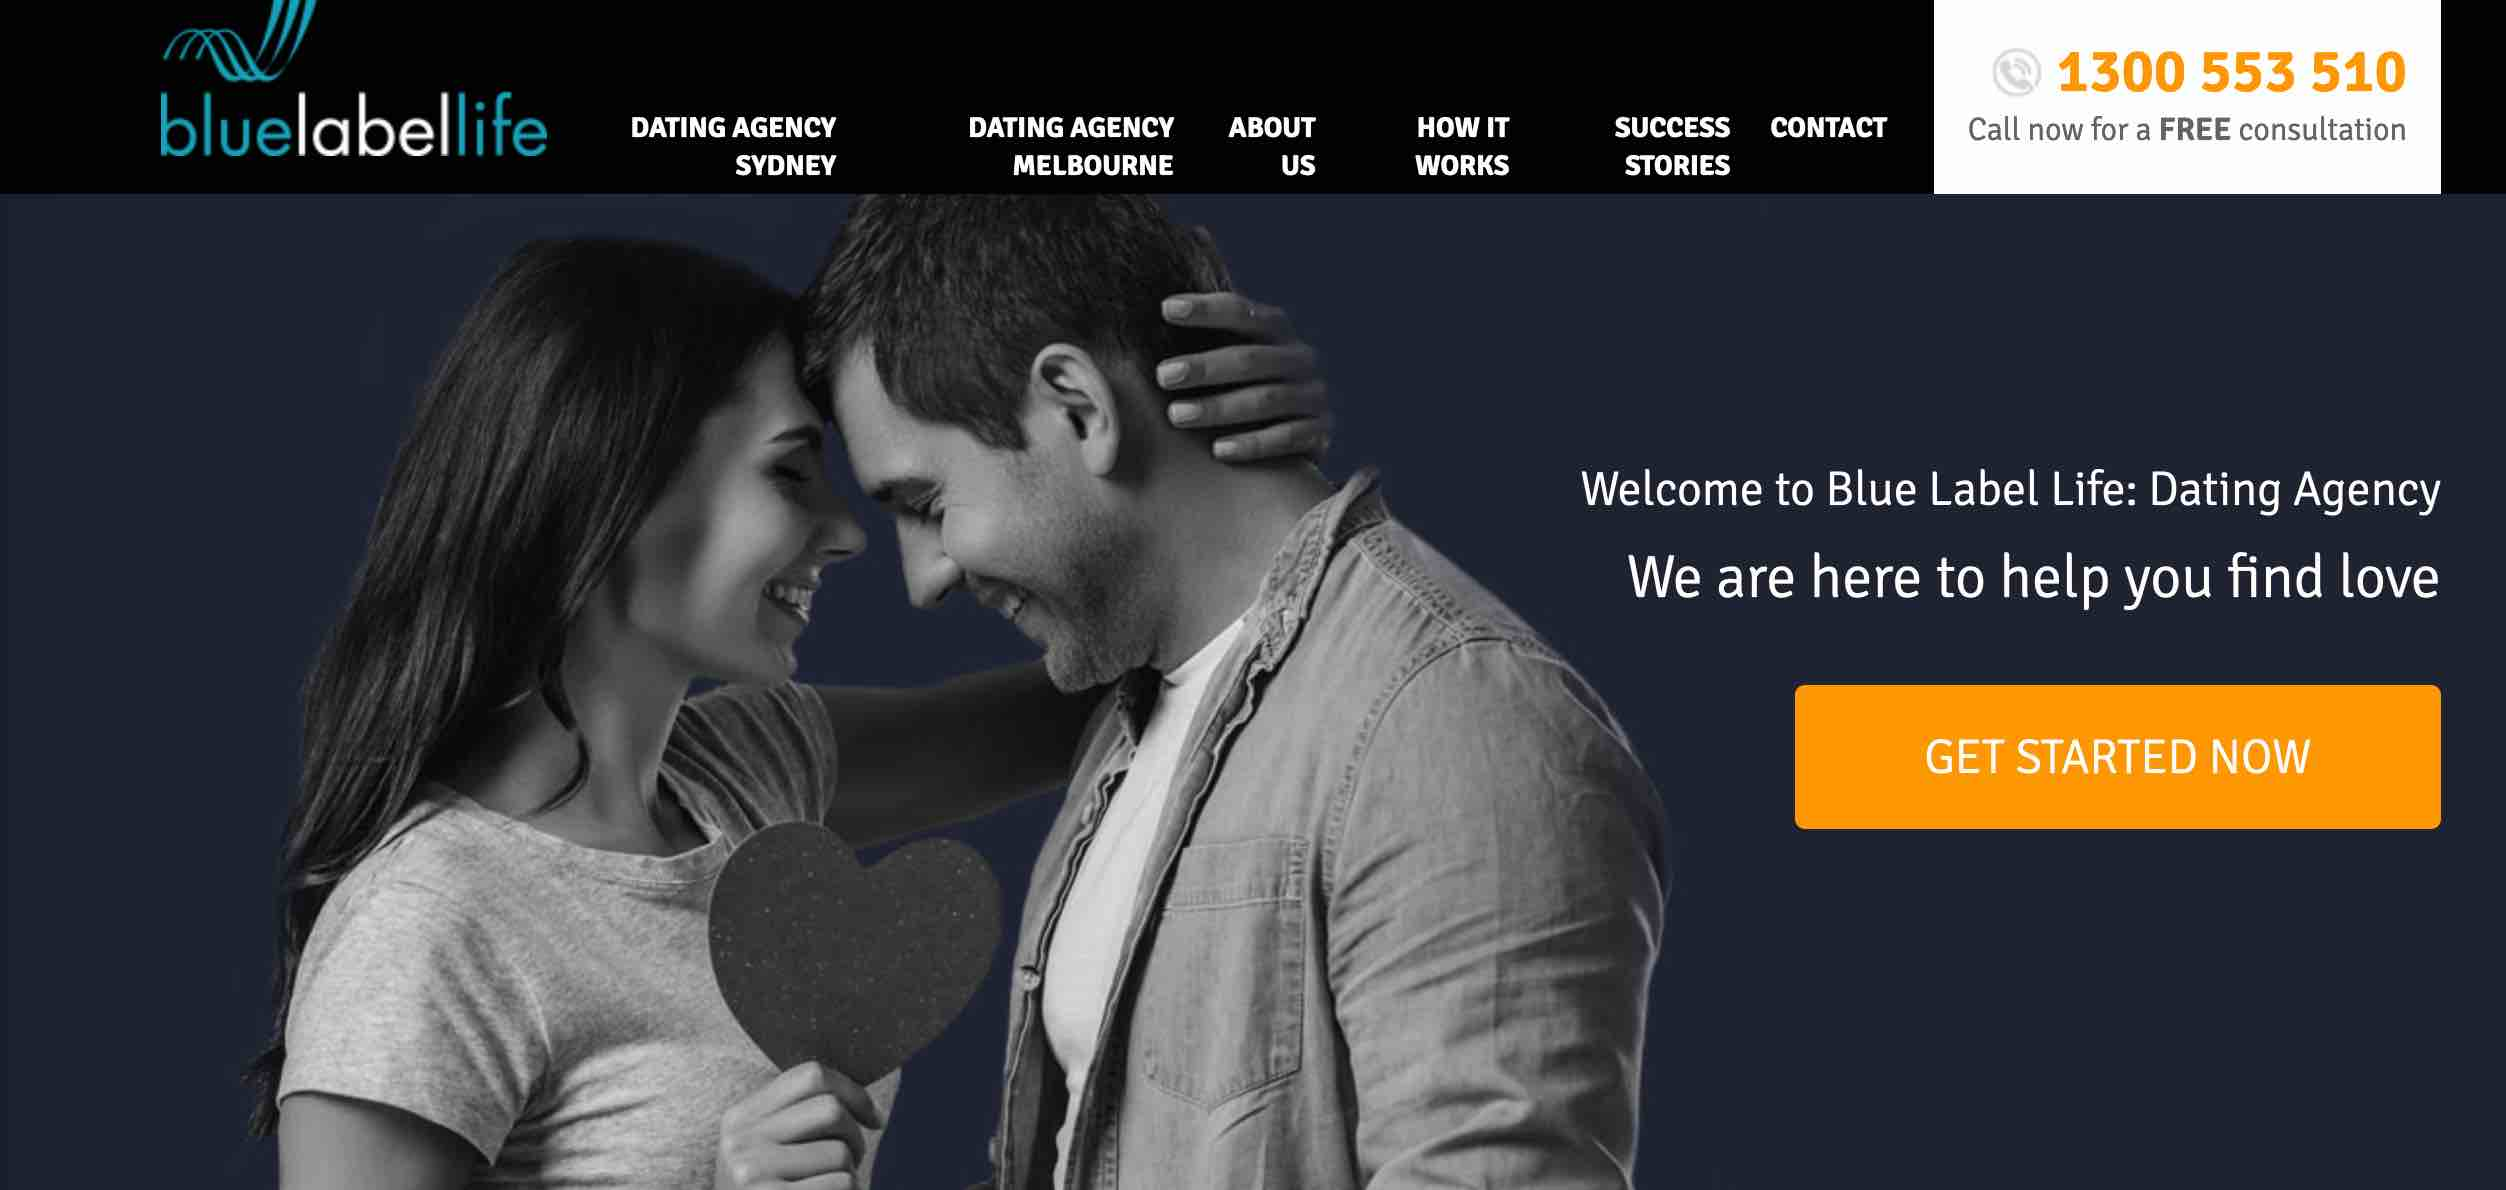 blue label life dating agency case study